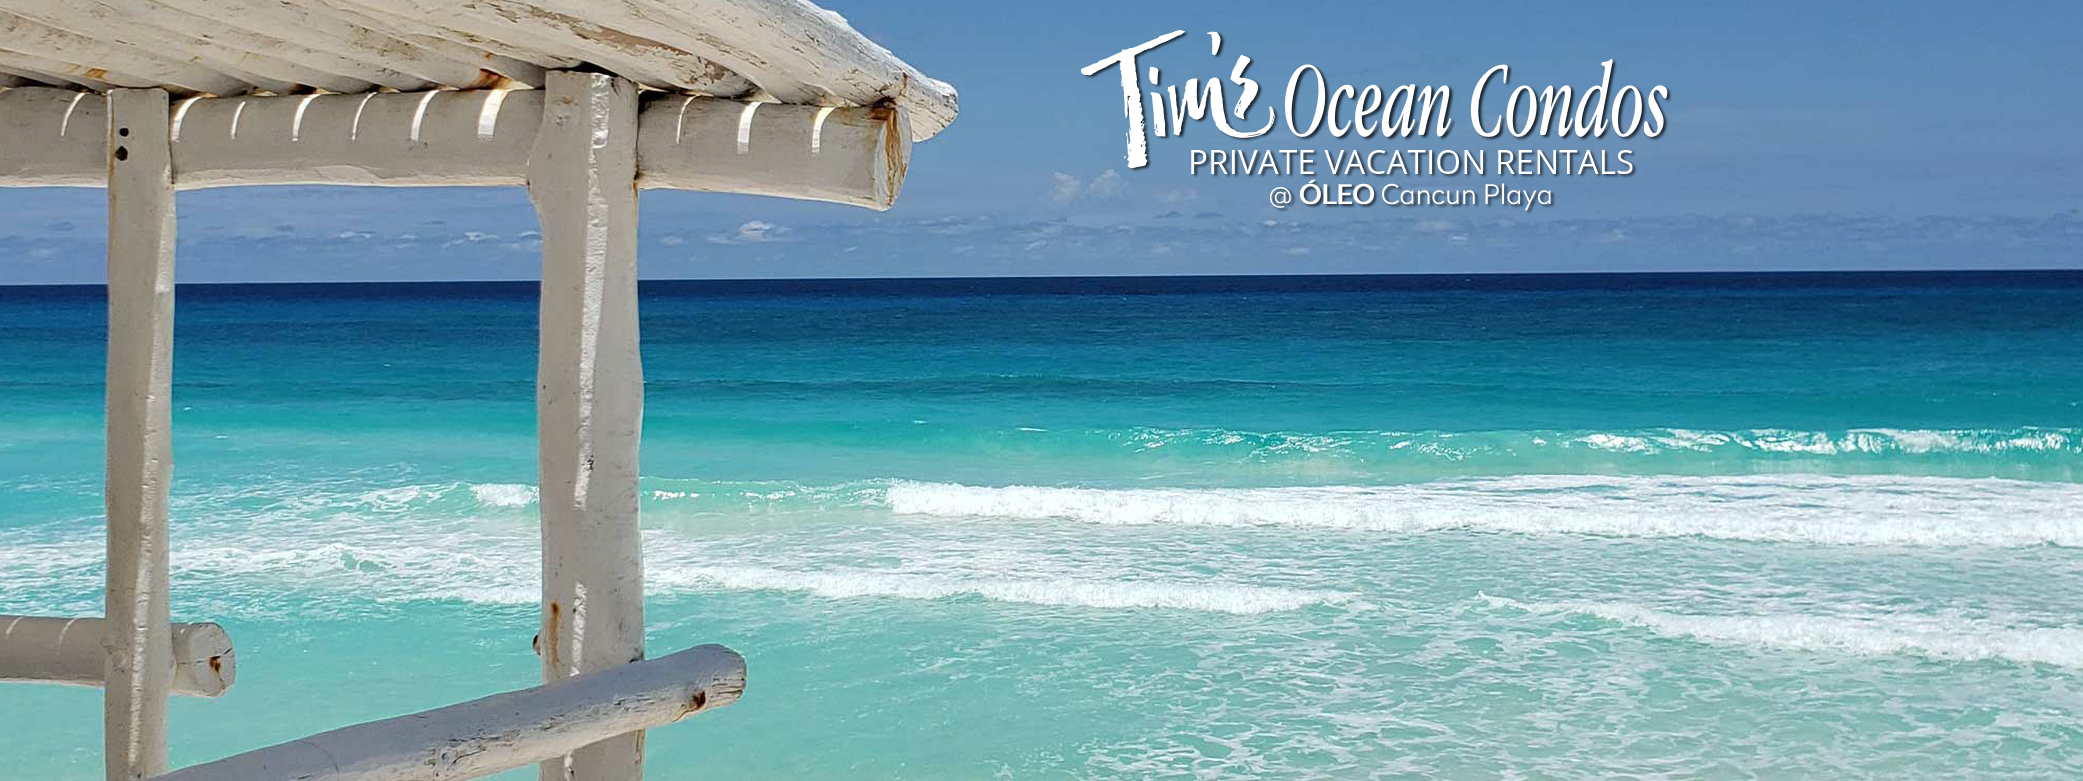 Vacation Rentals on the beach in Cancun Mexico